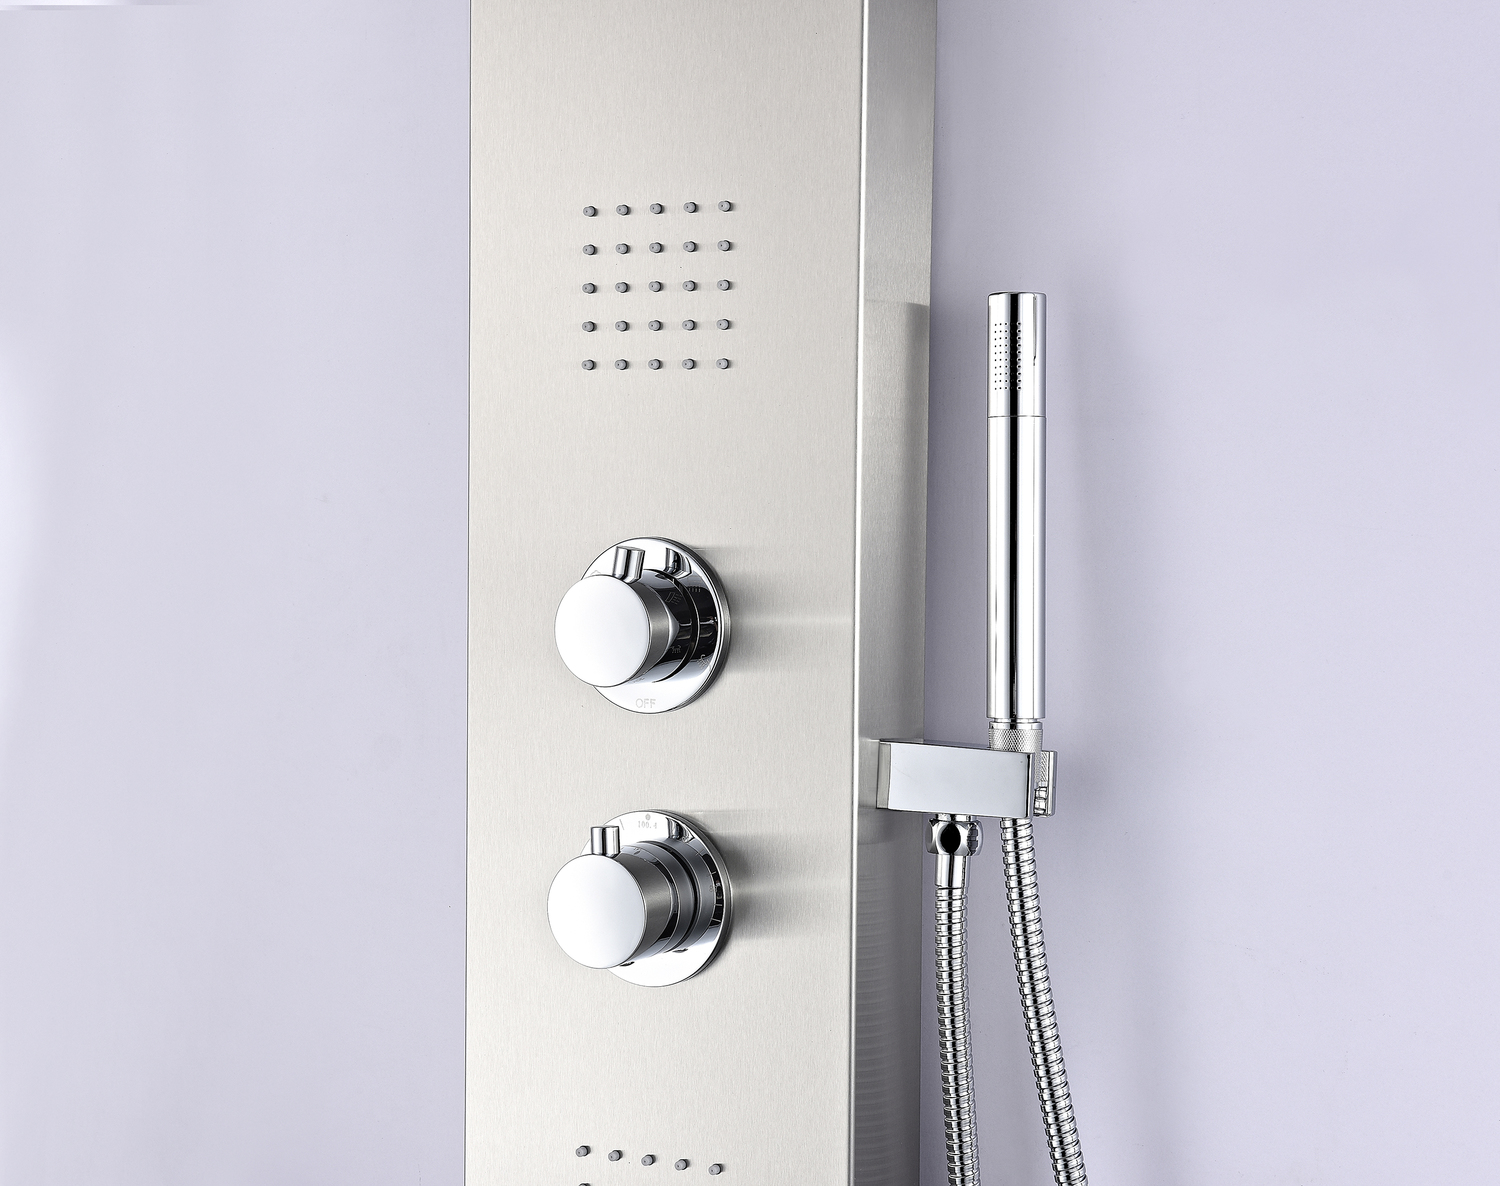 Anzzi Sp Az038 Anchorage Series 60 In Full Body Shower Panel System With Heavy Rain And Spray Wand Brushed Steel